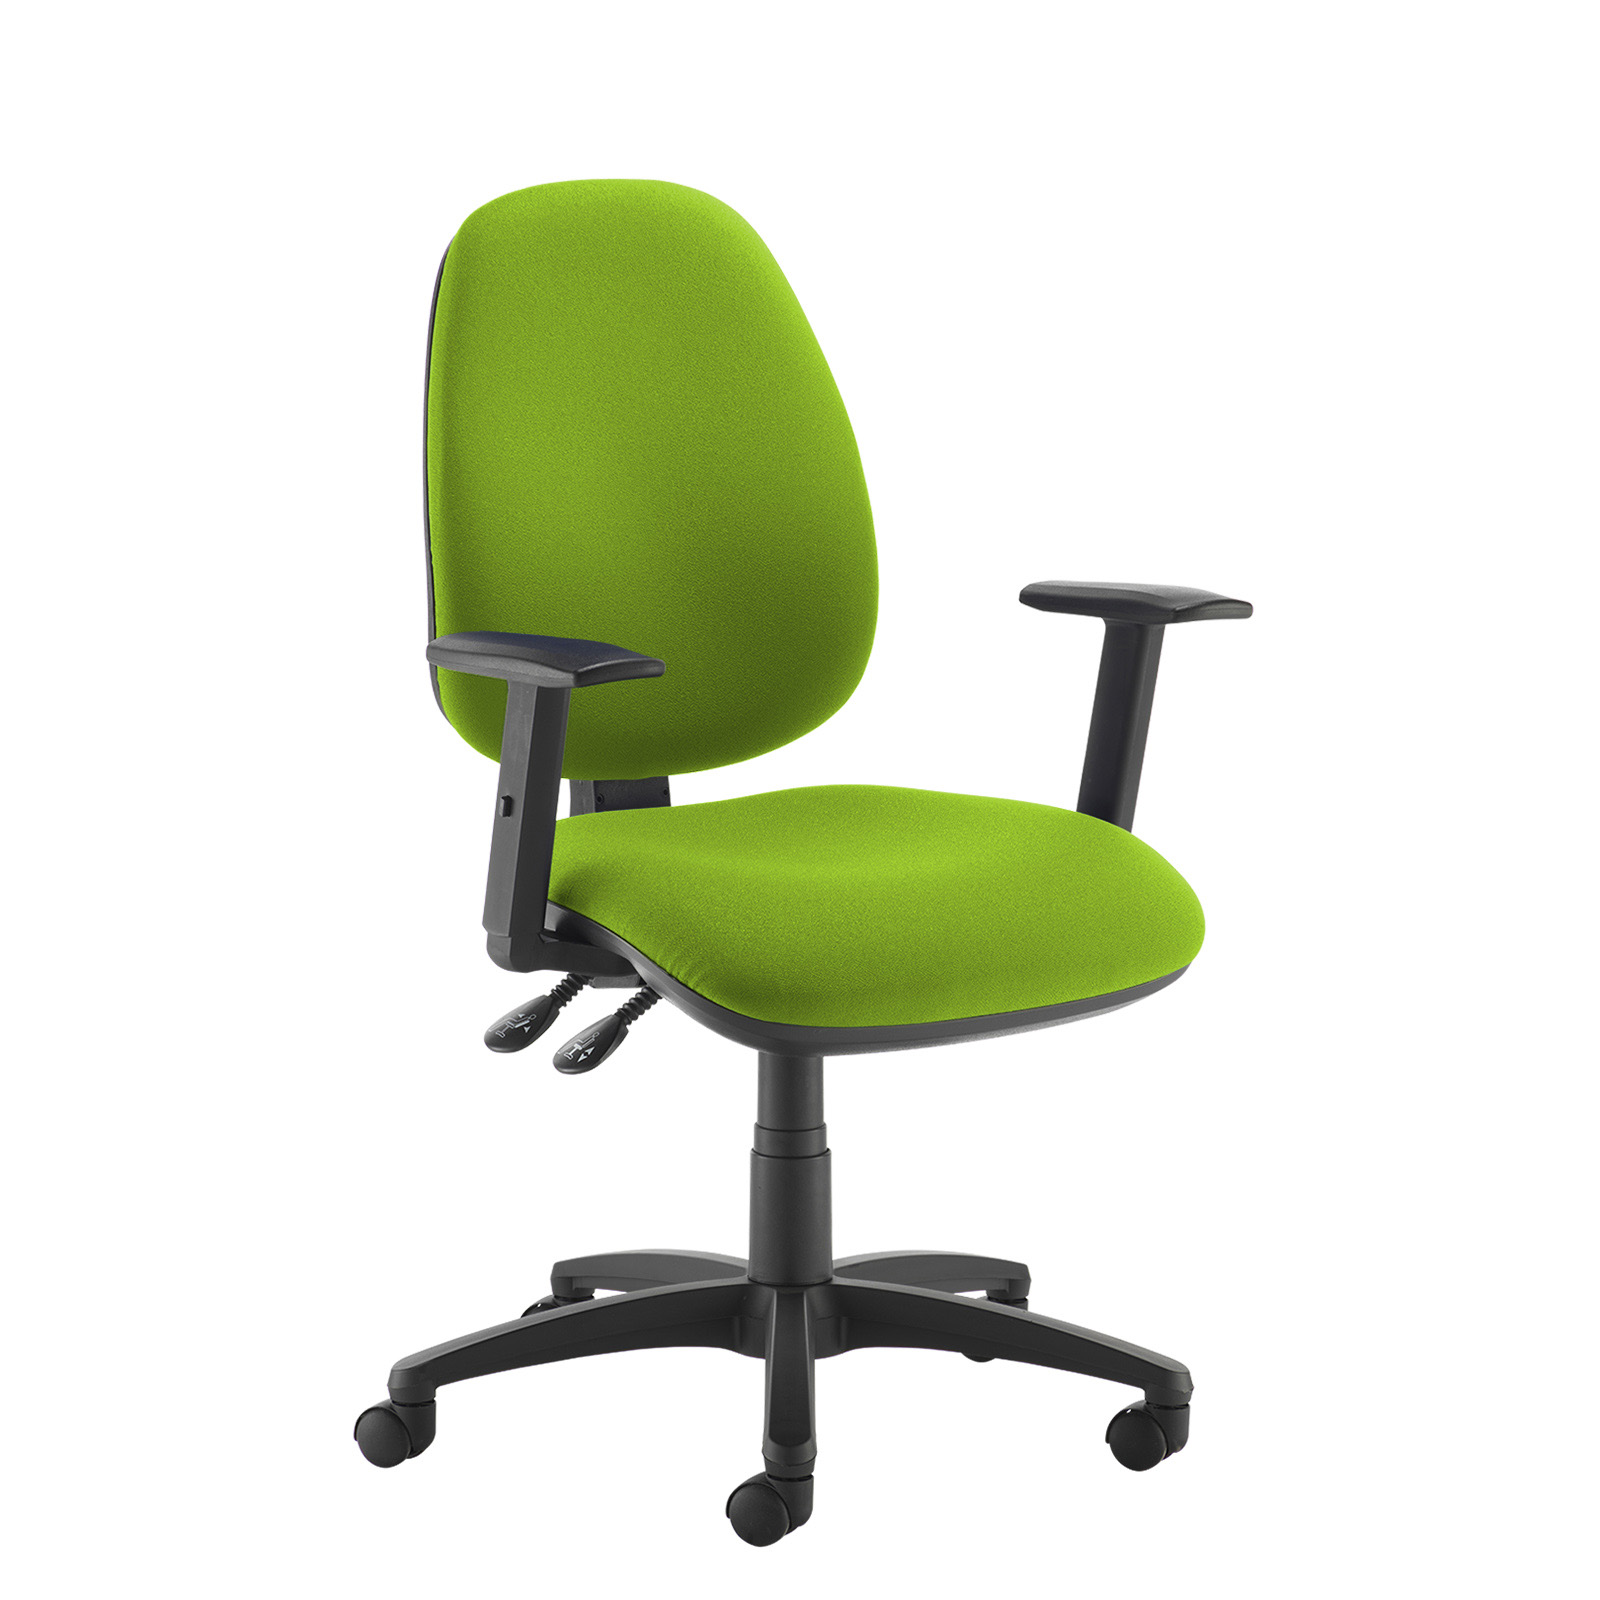 Desk Chairs Jota high back operator chair with adjustable arms - green